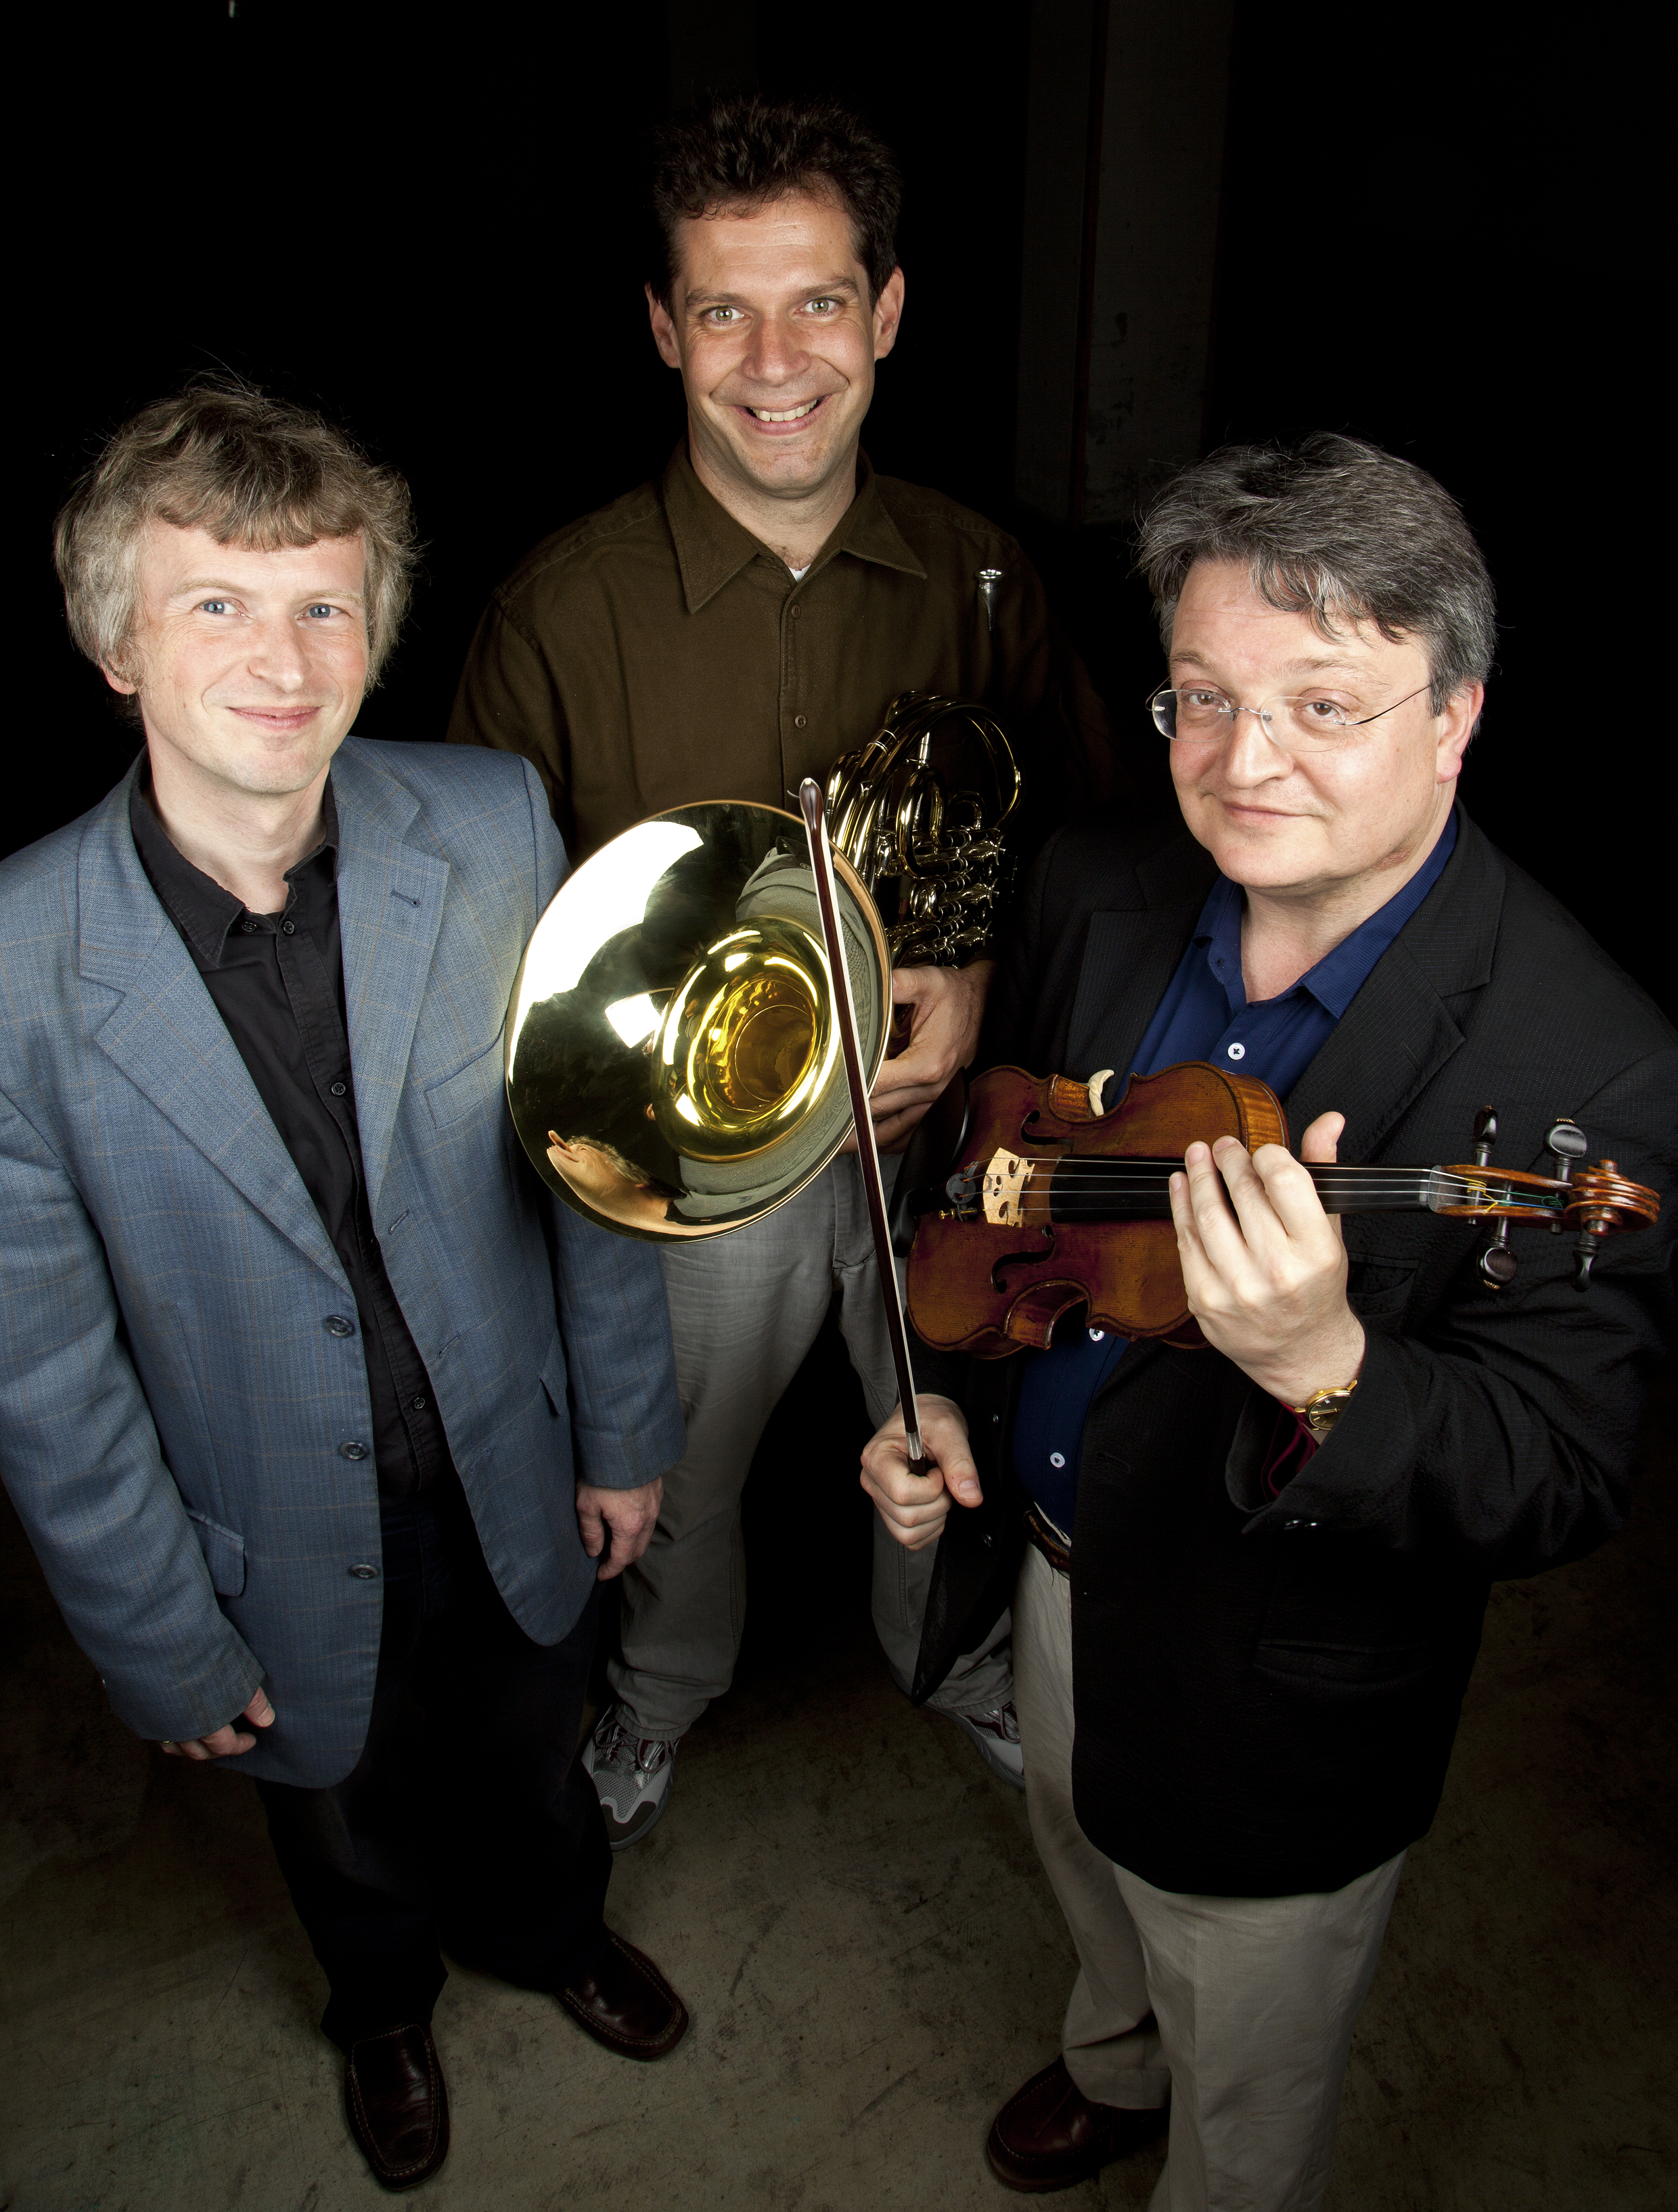 Merlin Horn Trio Photograph LARGEphotoRjuliachange.jpg